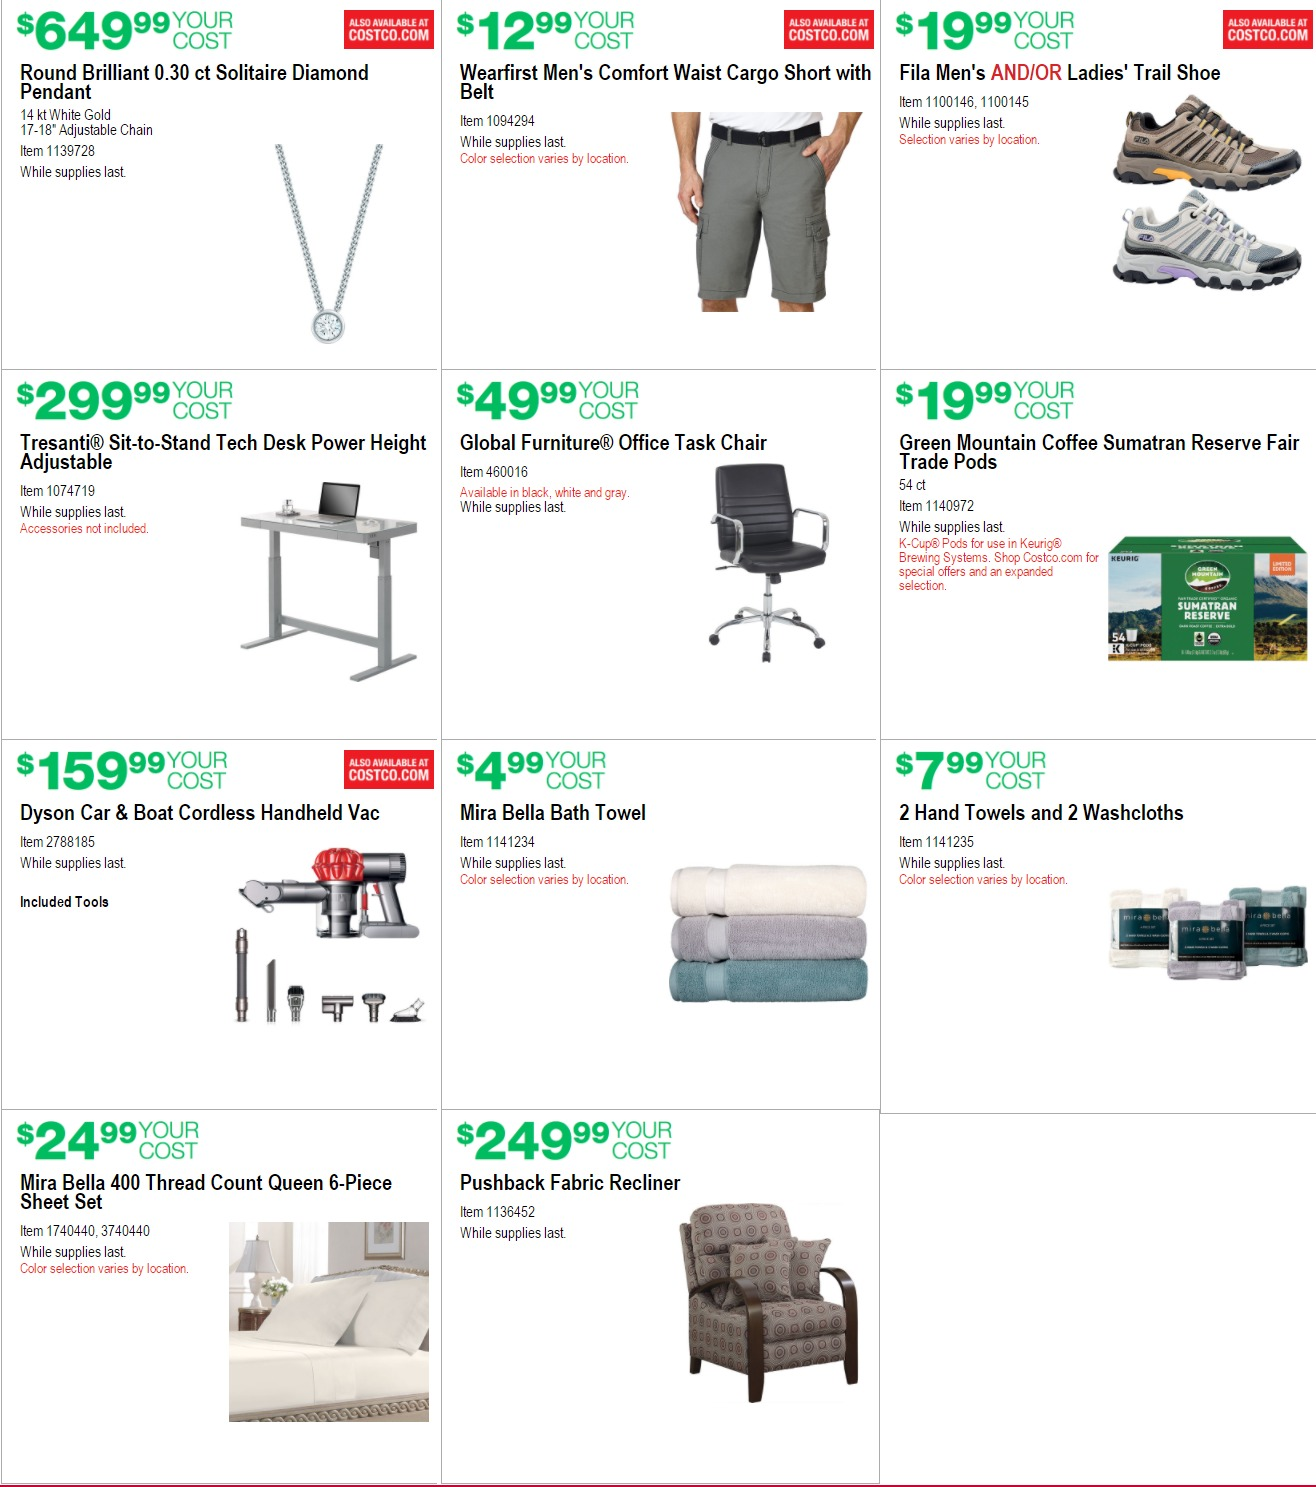 picture relating to Printable Gander Mountain Coupons called Eco-friendly mountain coupon printable 2018 / 411 push promotions